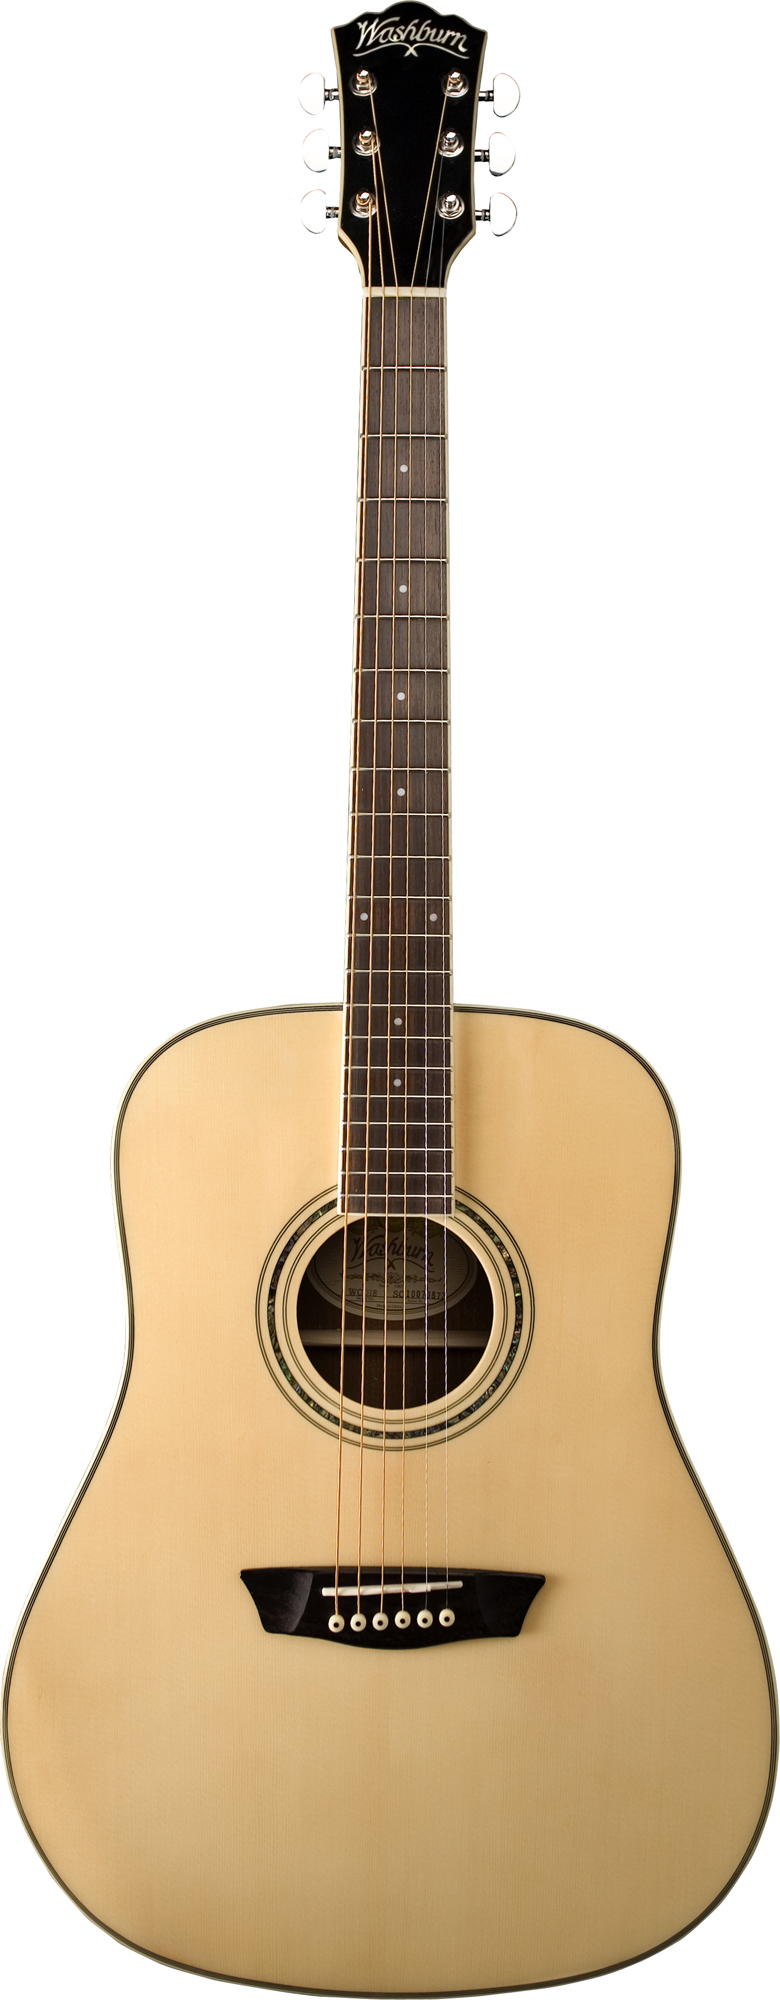 washburn wcd18 acoustic dreadnought style guitar w rosewood bridge tuners new ebay. Black Bedroom Furniture Sets. Home Design Ideas